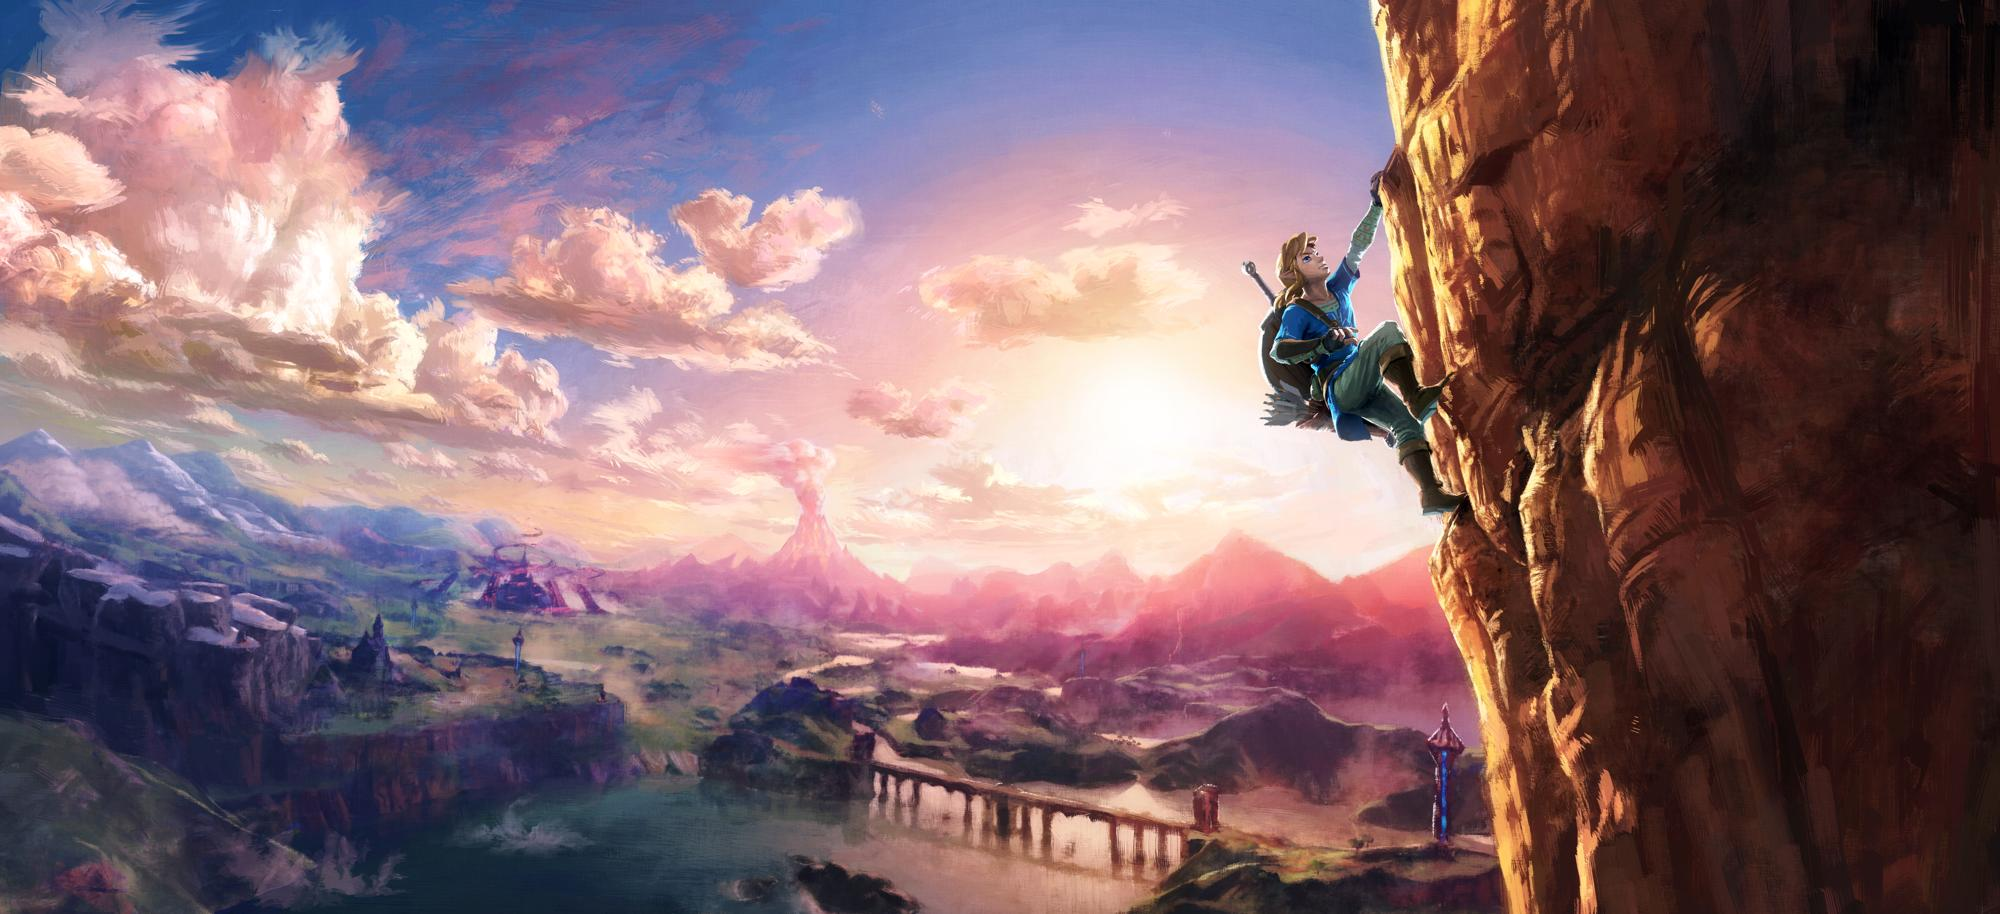 'Breath of the Wild' is the boldest 'Zelda' game in years